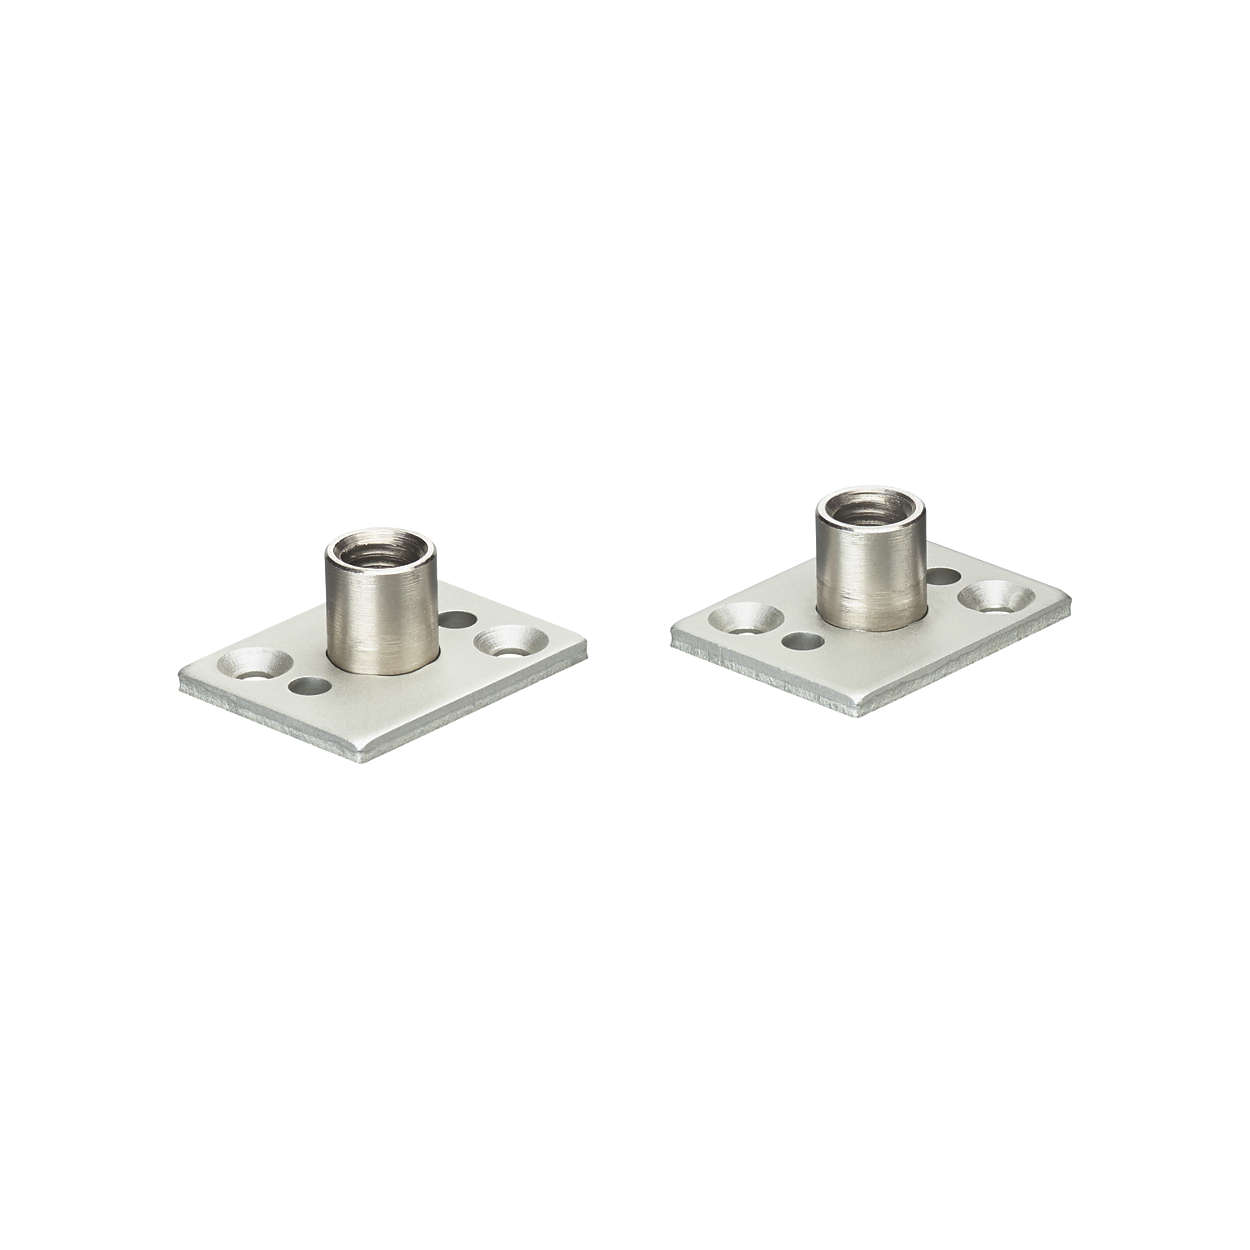 Accessories for Accent Compact fixtures